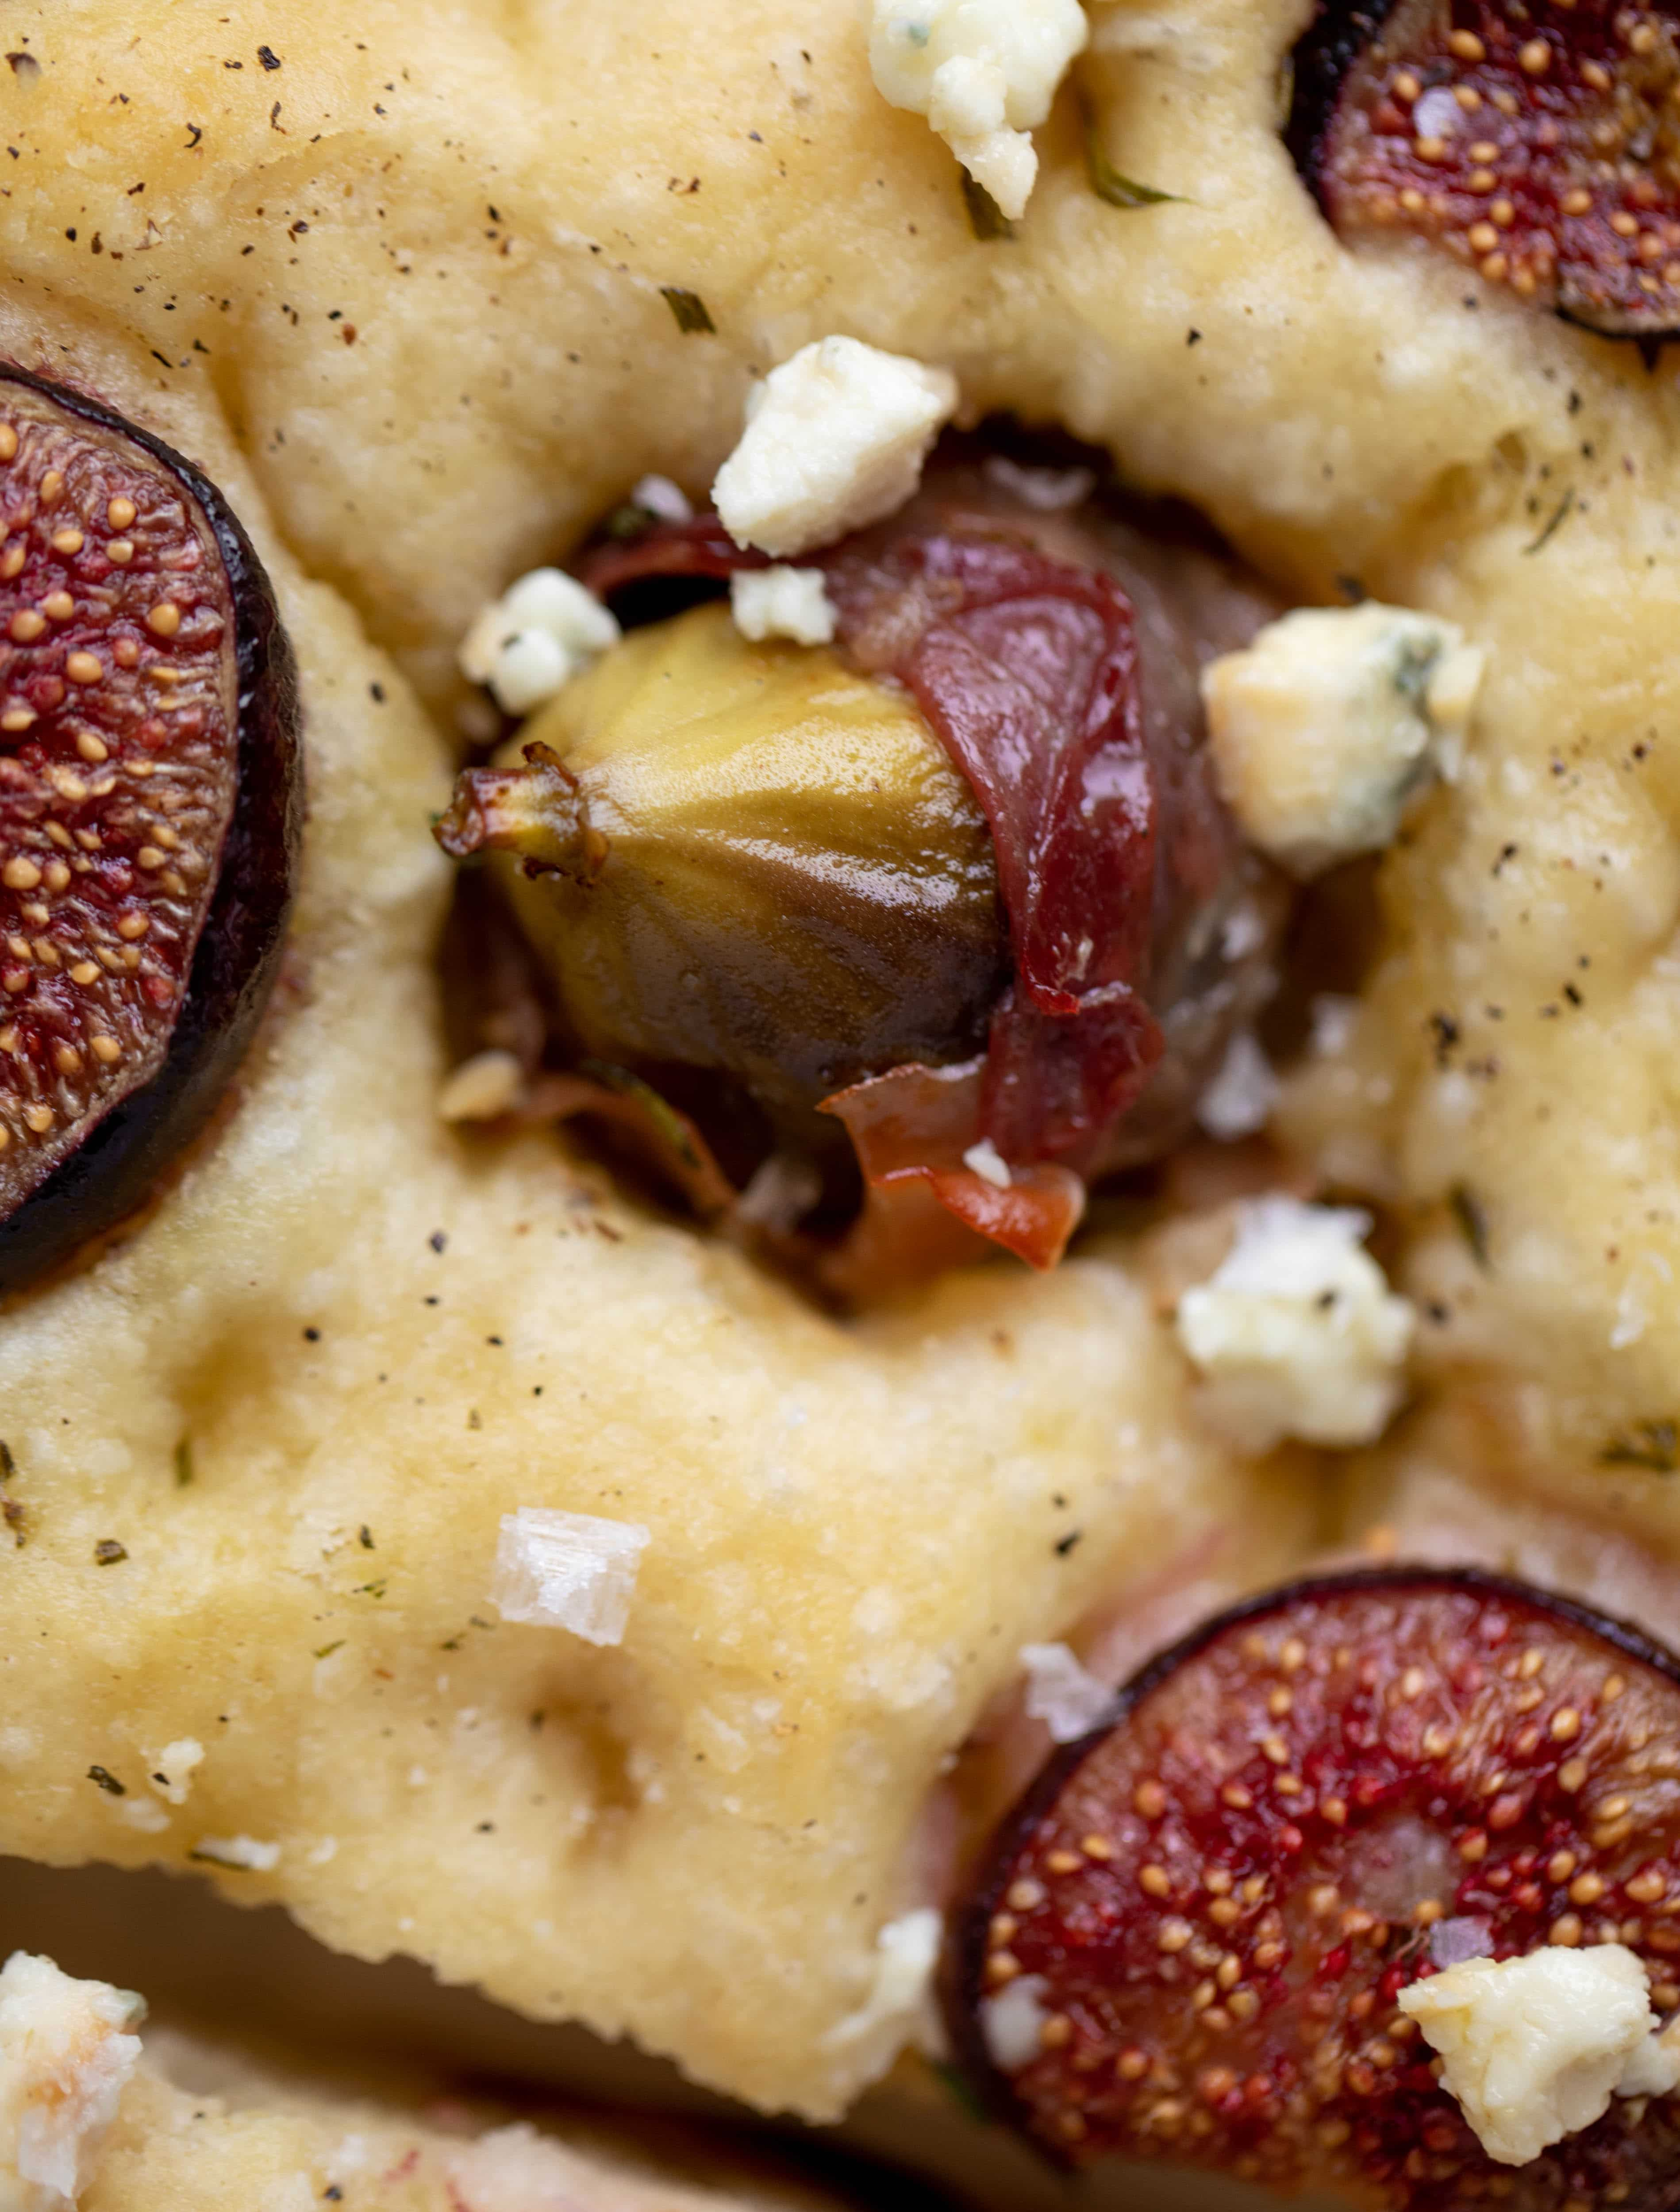 This stuffed fig focaccia bread is such an amazing way to use figs! Golden, toasty, salted focaccia studded with fig jewels. It's delicious and pretty!